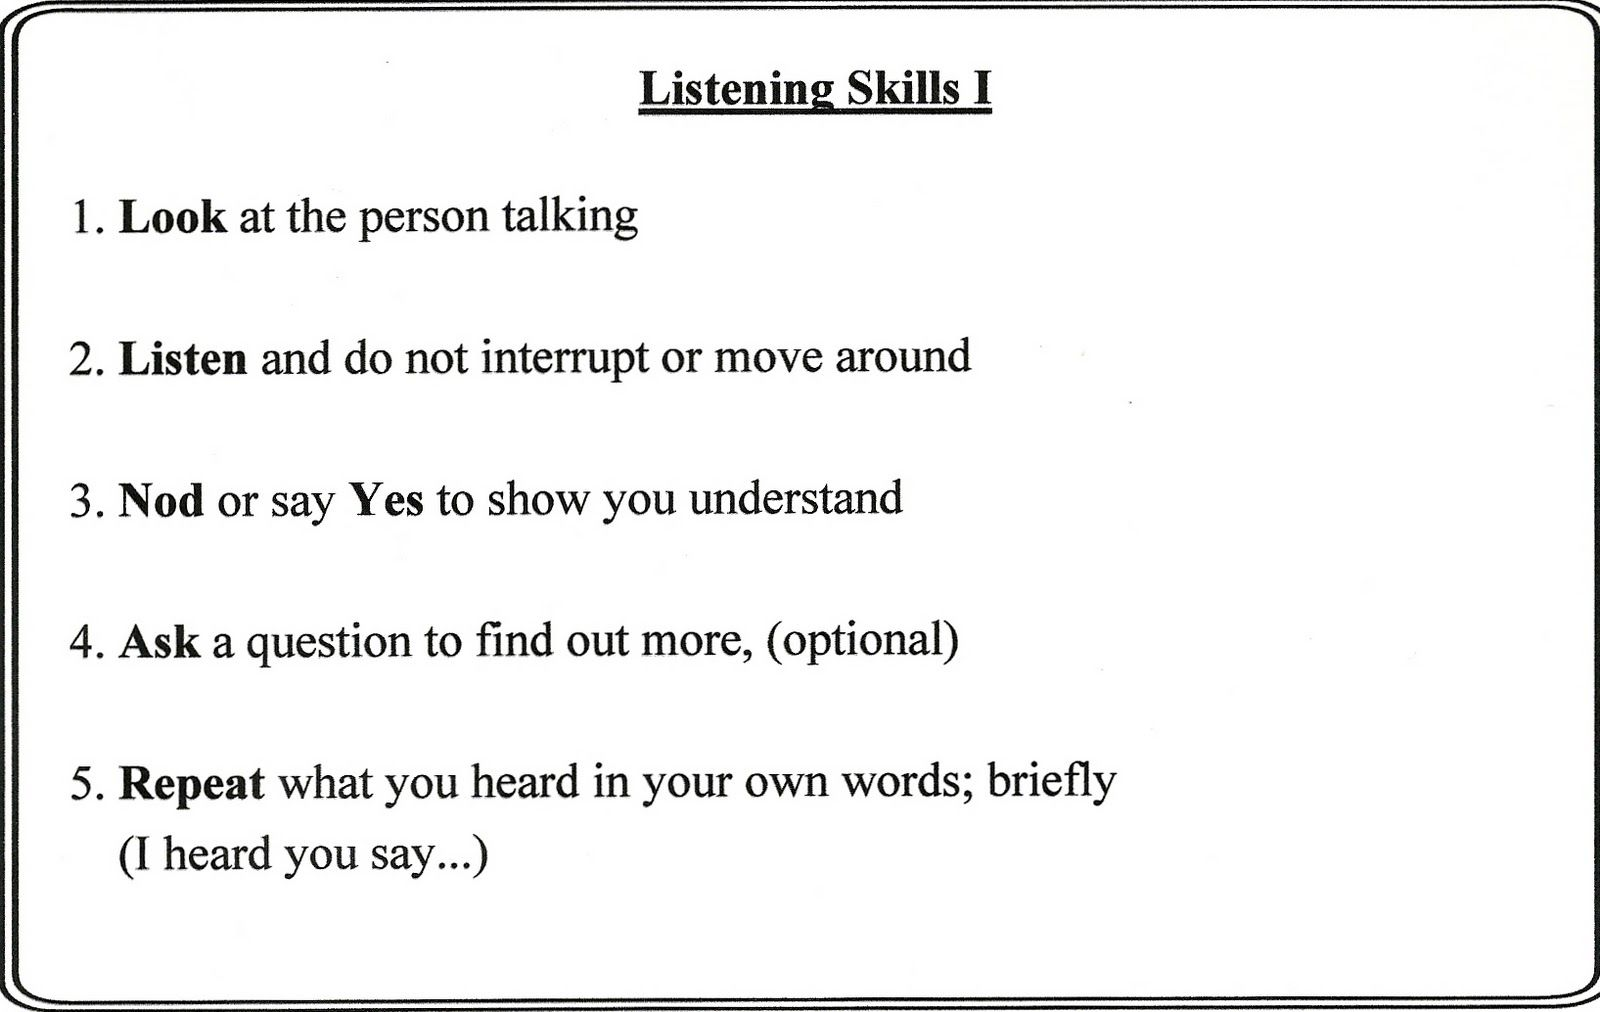 Active Listening Is Very Important When Trying To Resolve